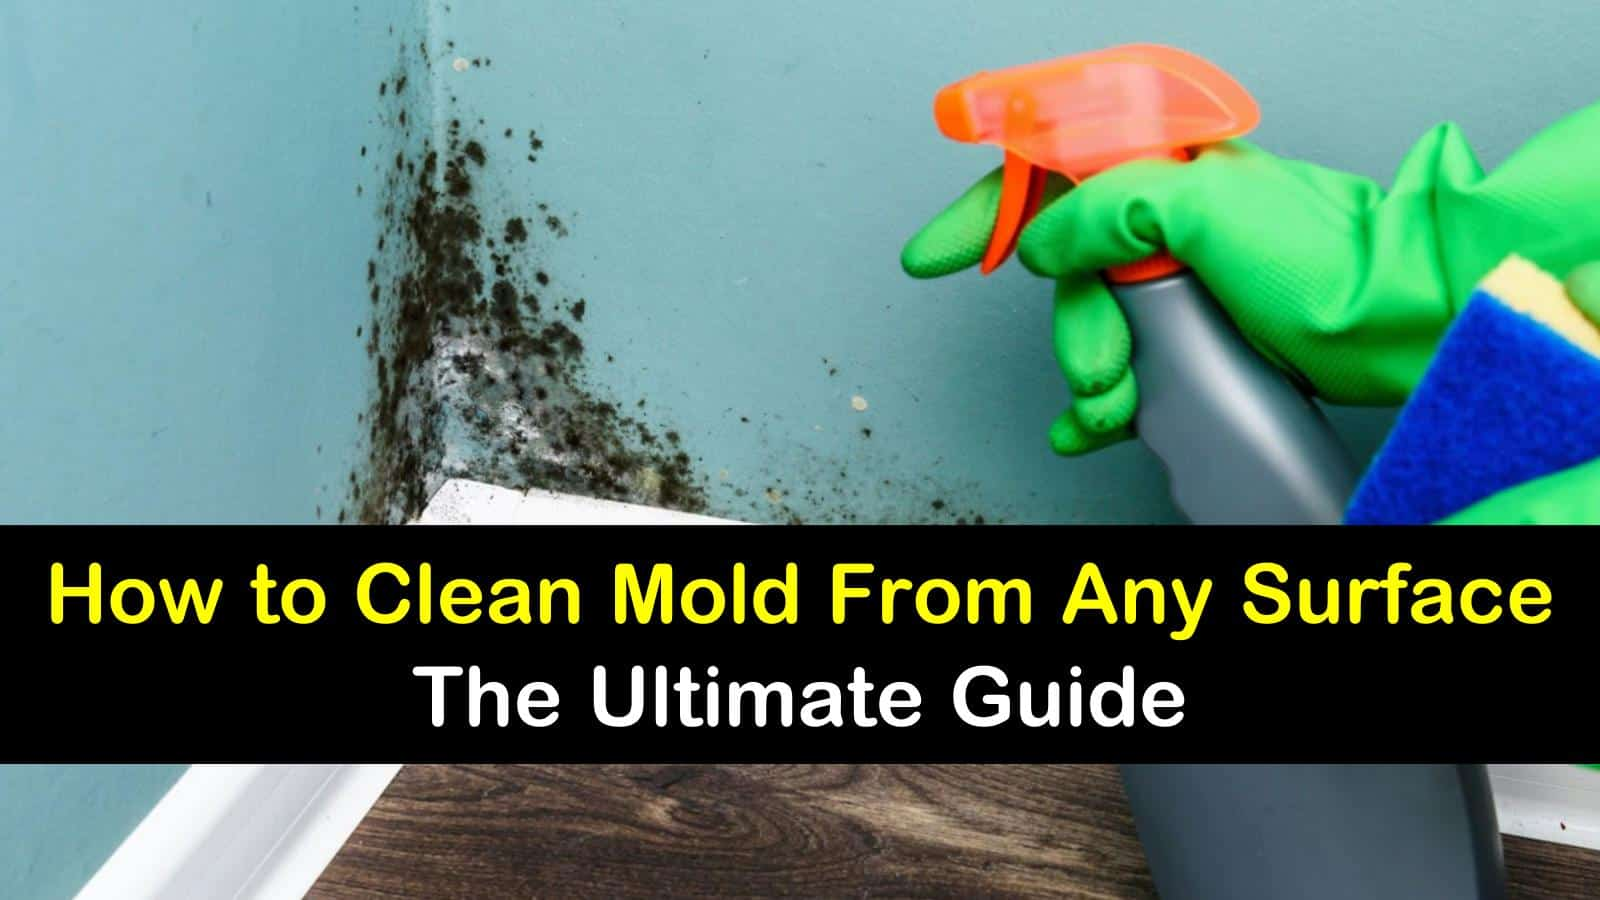 how to clean mold titleimg1